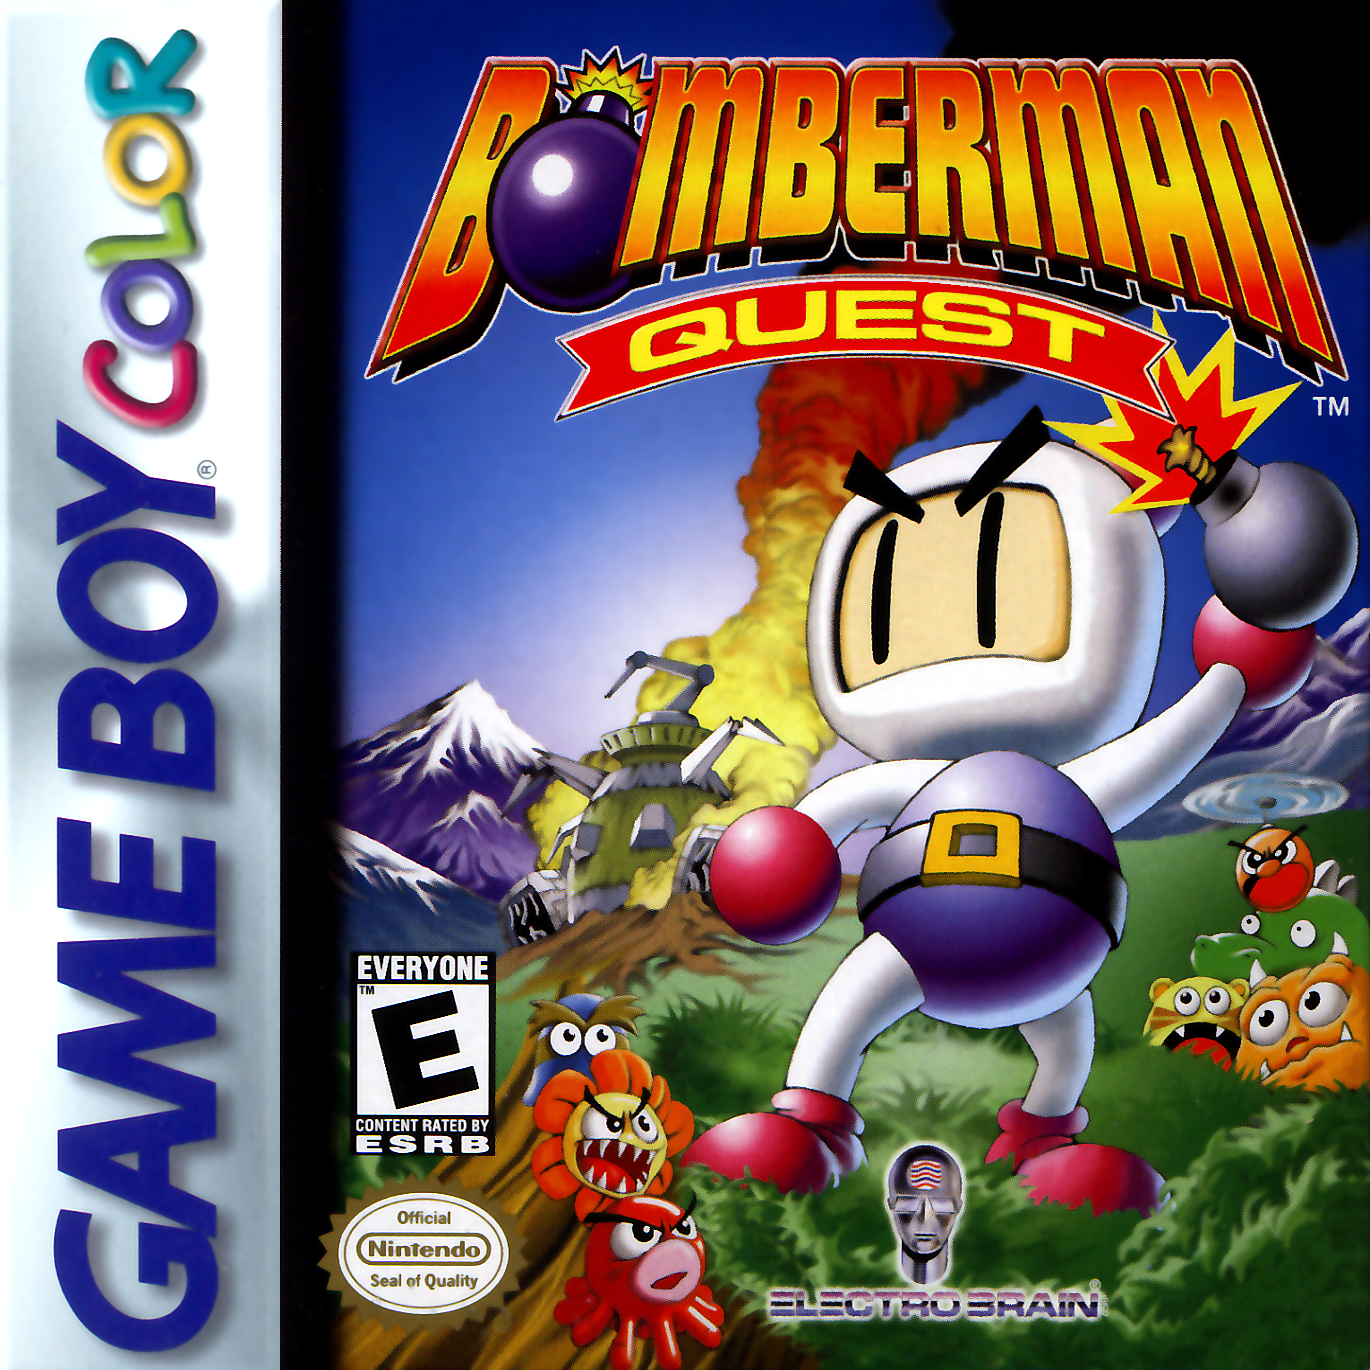 Bomberman Quest Nintendo Game Boy Color cover artwork